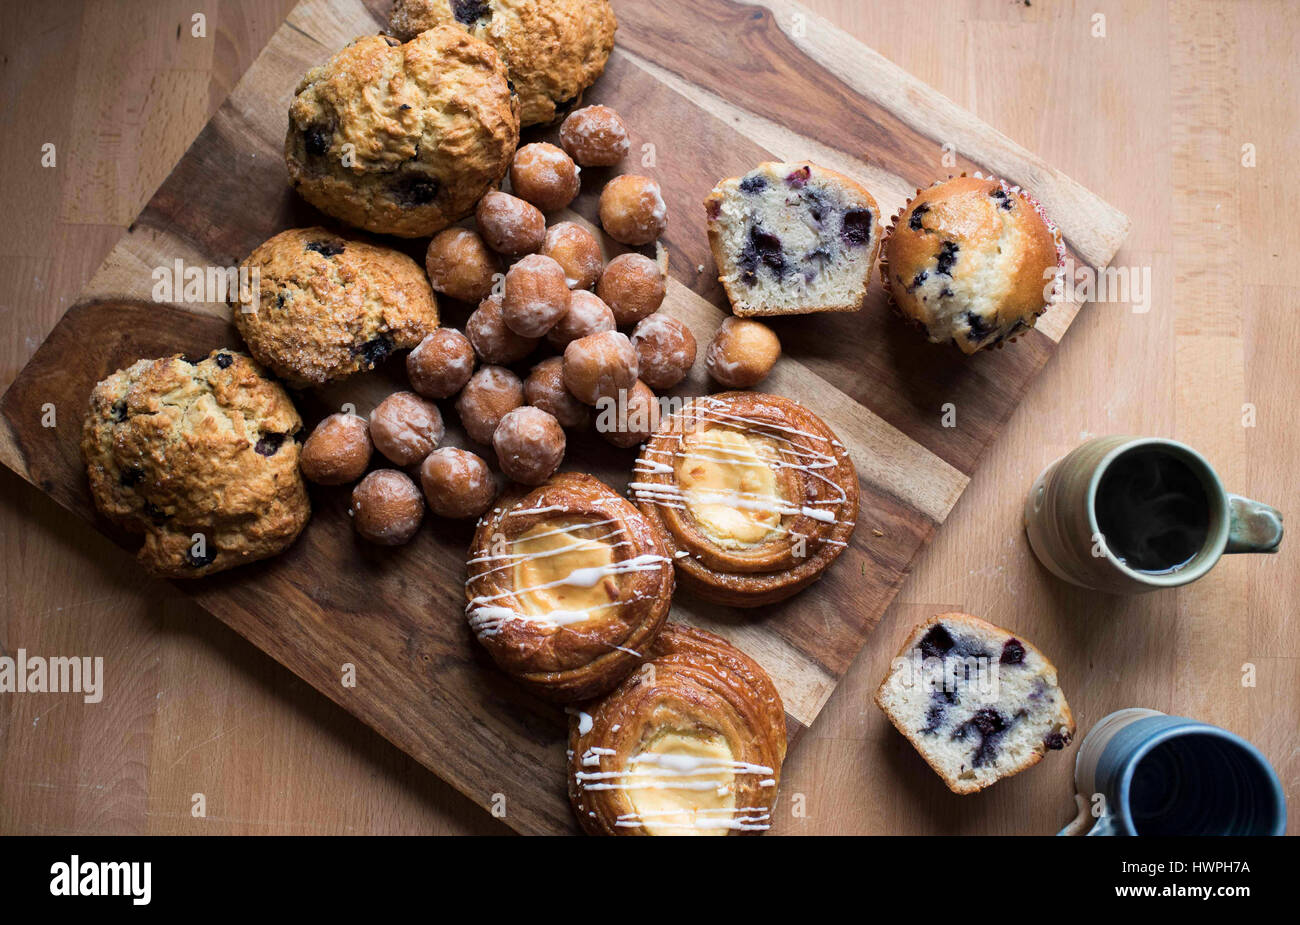 High angle view of sweet food with coffee on wooden table - Stock Image